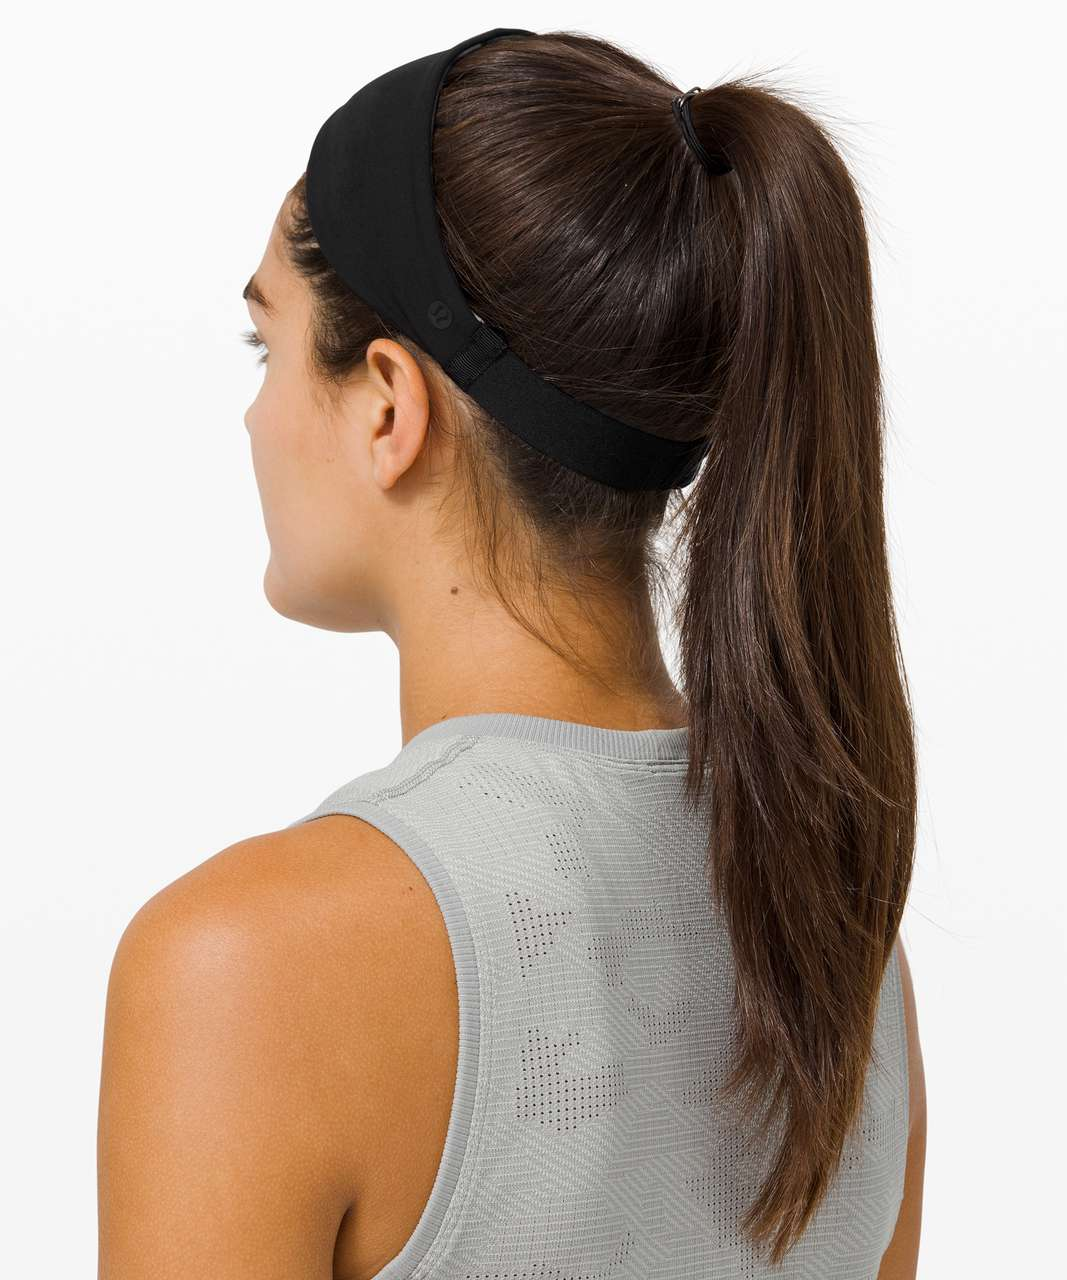 Lululemon Fringe Fighter Headband - Diamond Dye Chrome Violet Verbena Graphite Grey / Violet Verbena